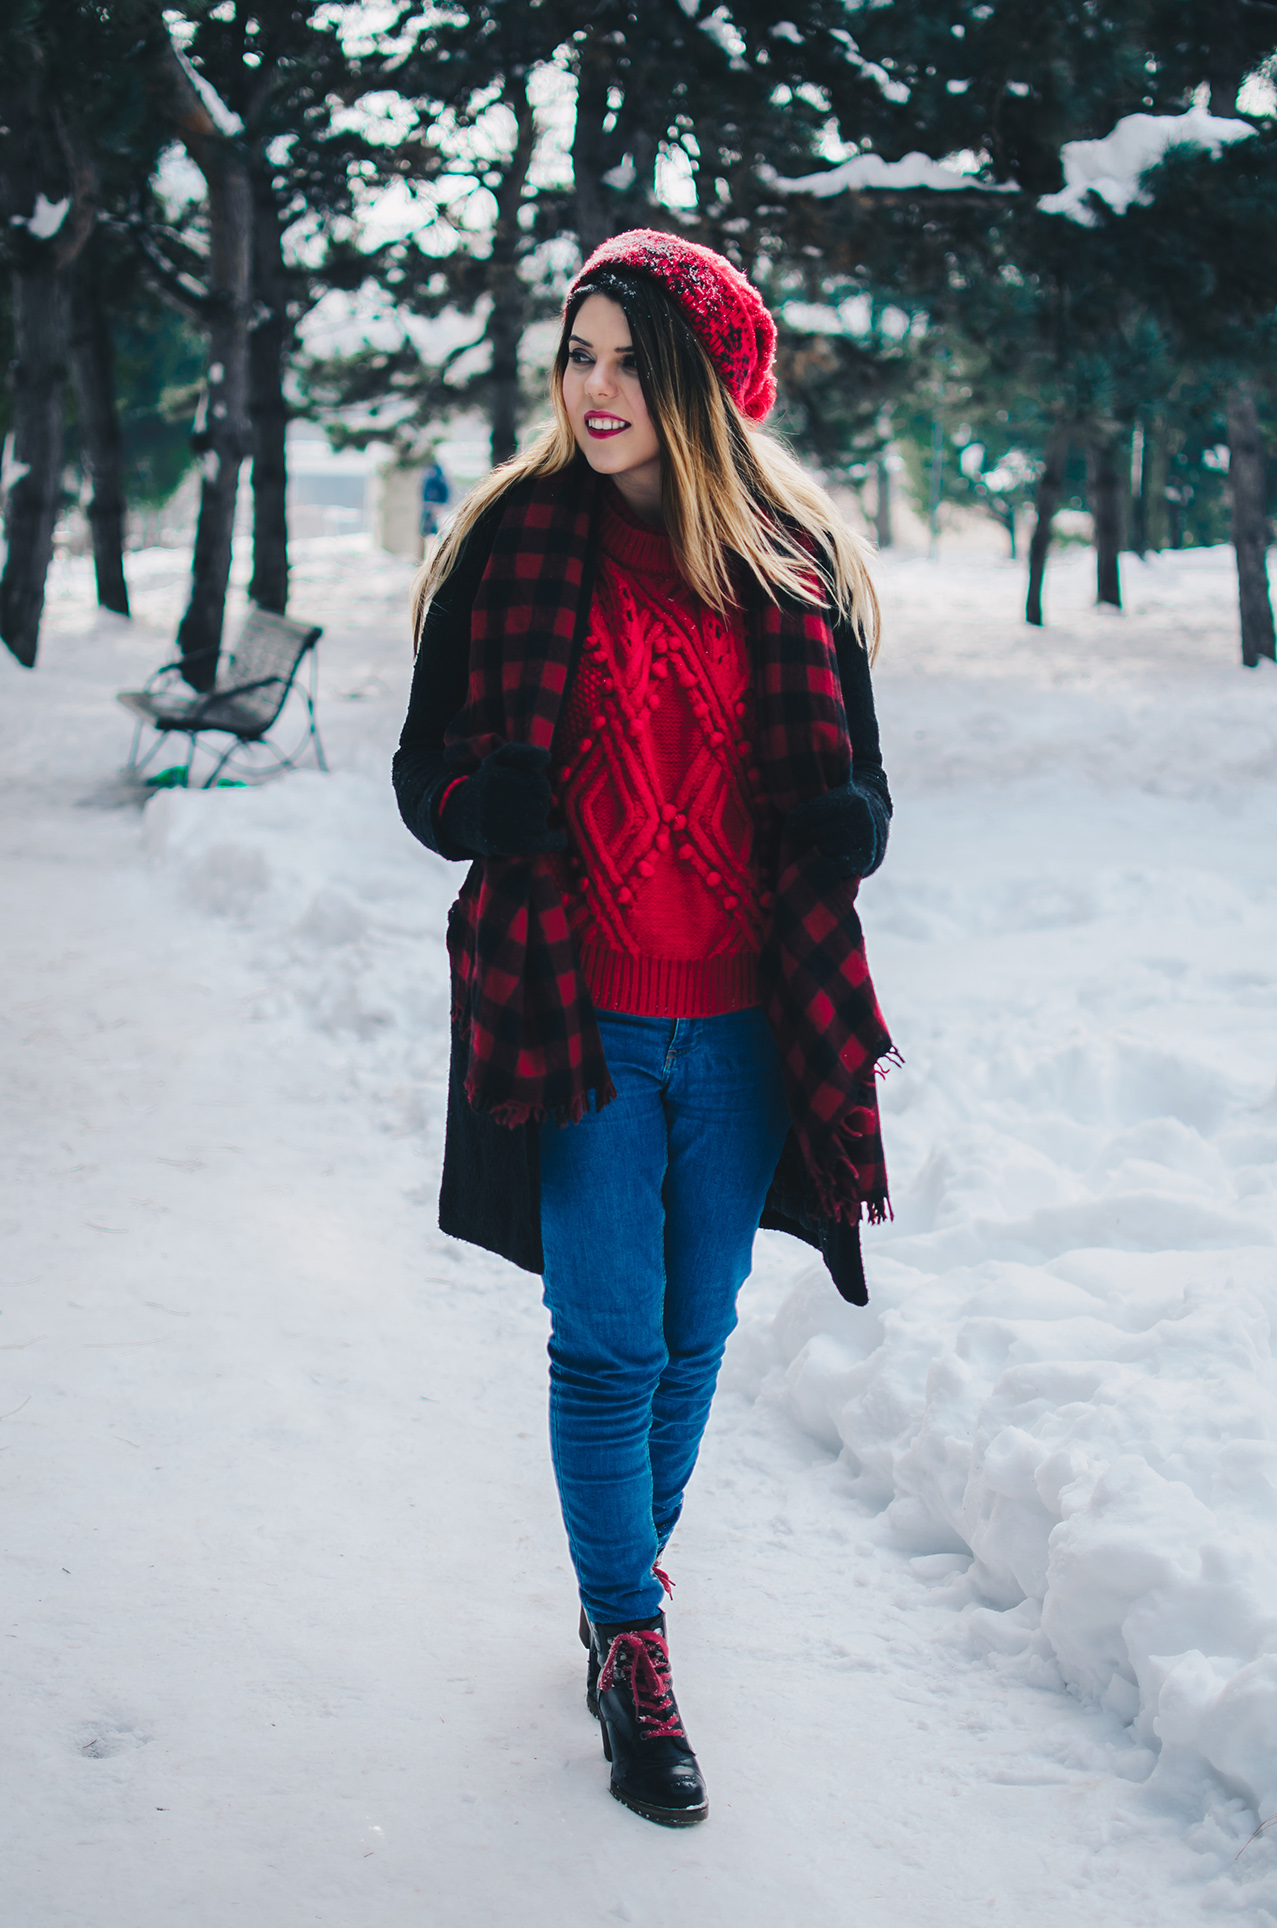 perfect winter outfit anotherside of me blog